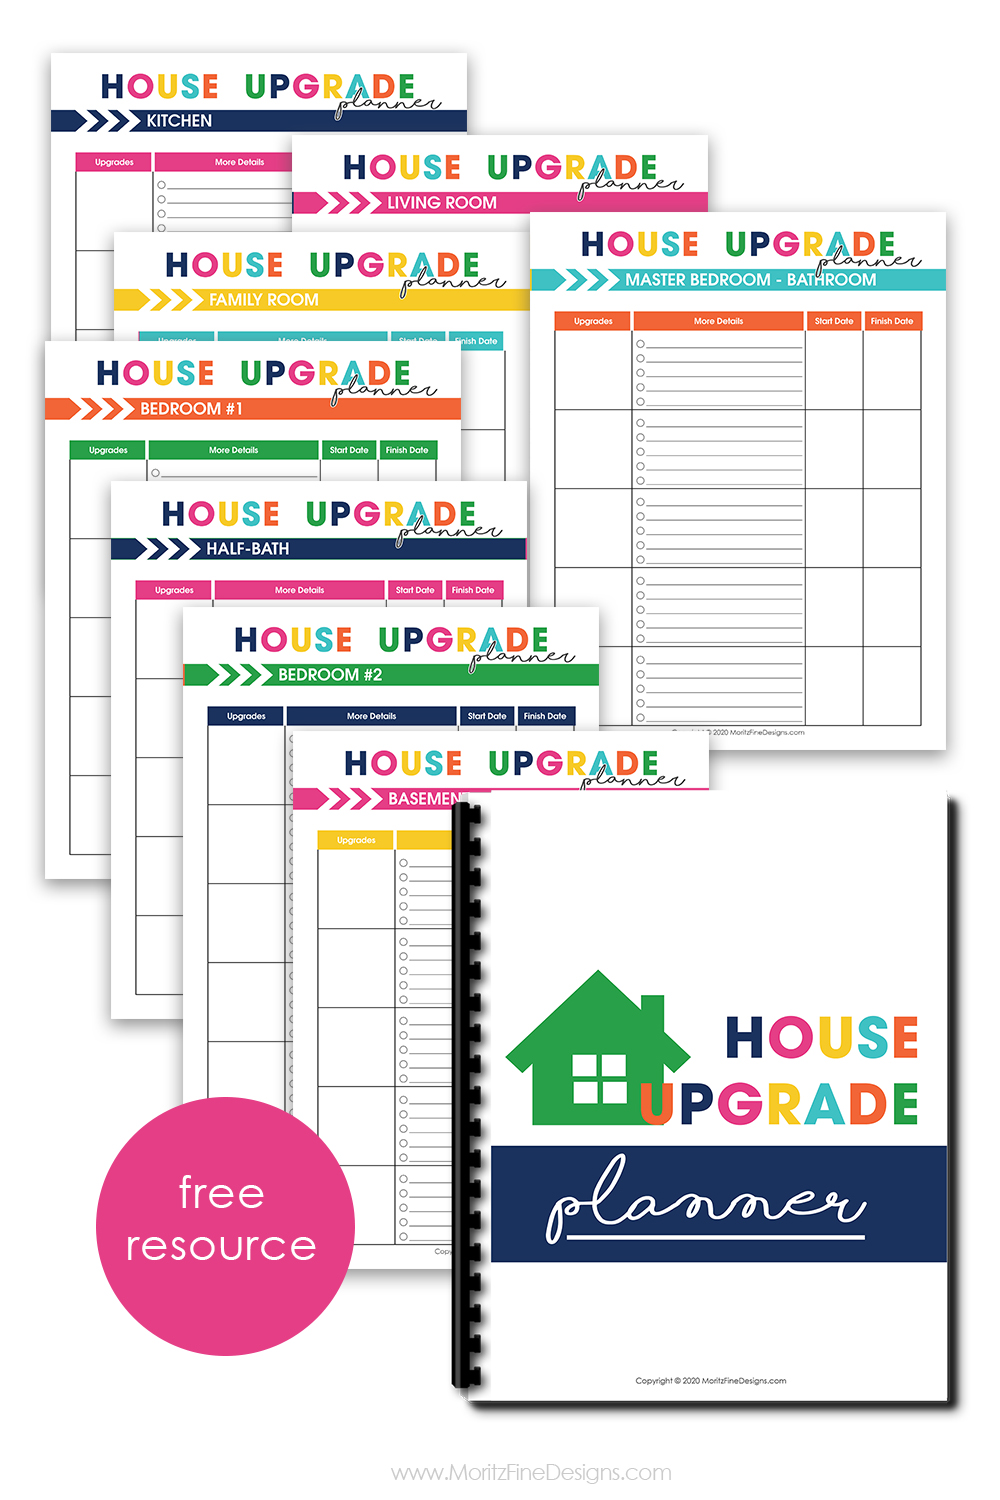 When you make changes to your home, you can keep track of every upgrade, from lighting to flooring and everything in between, in the House Upgrade Planner.